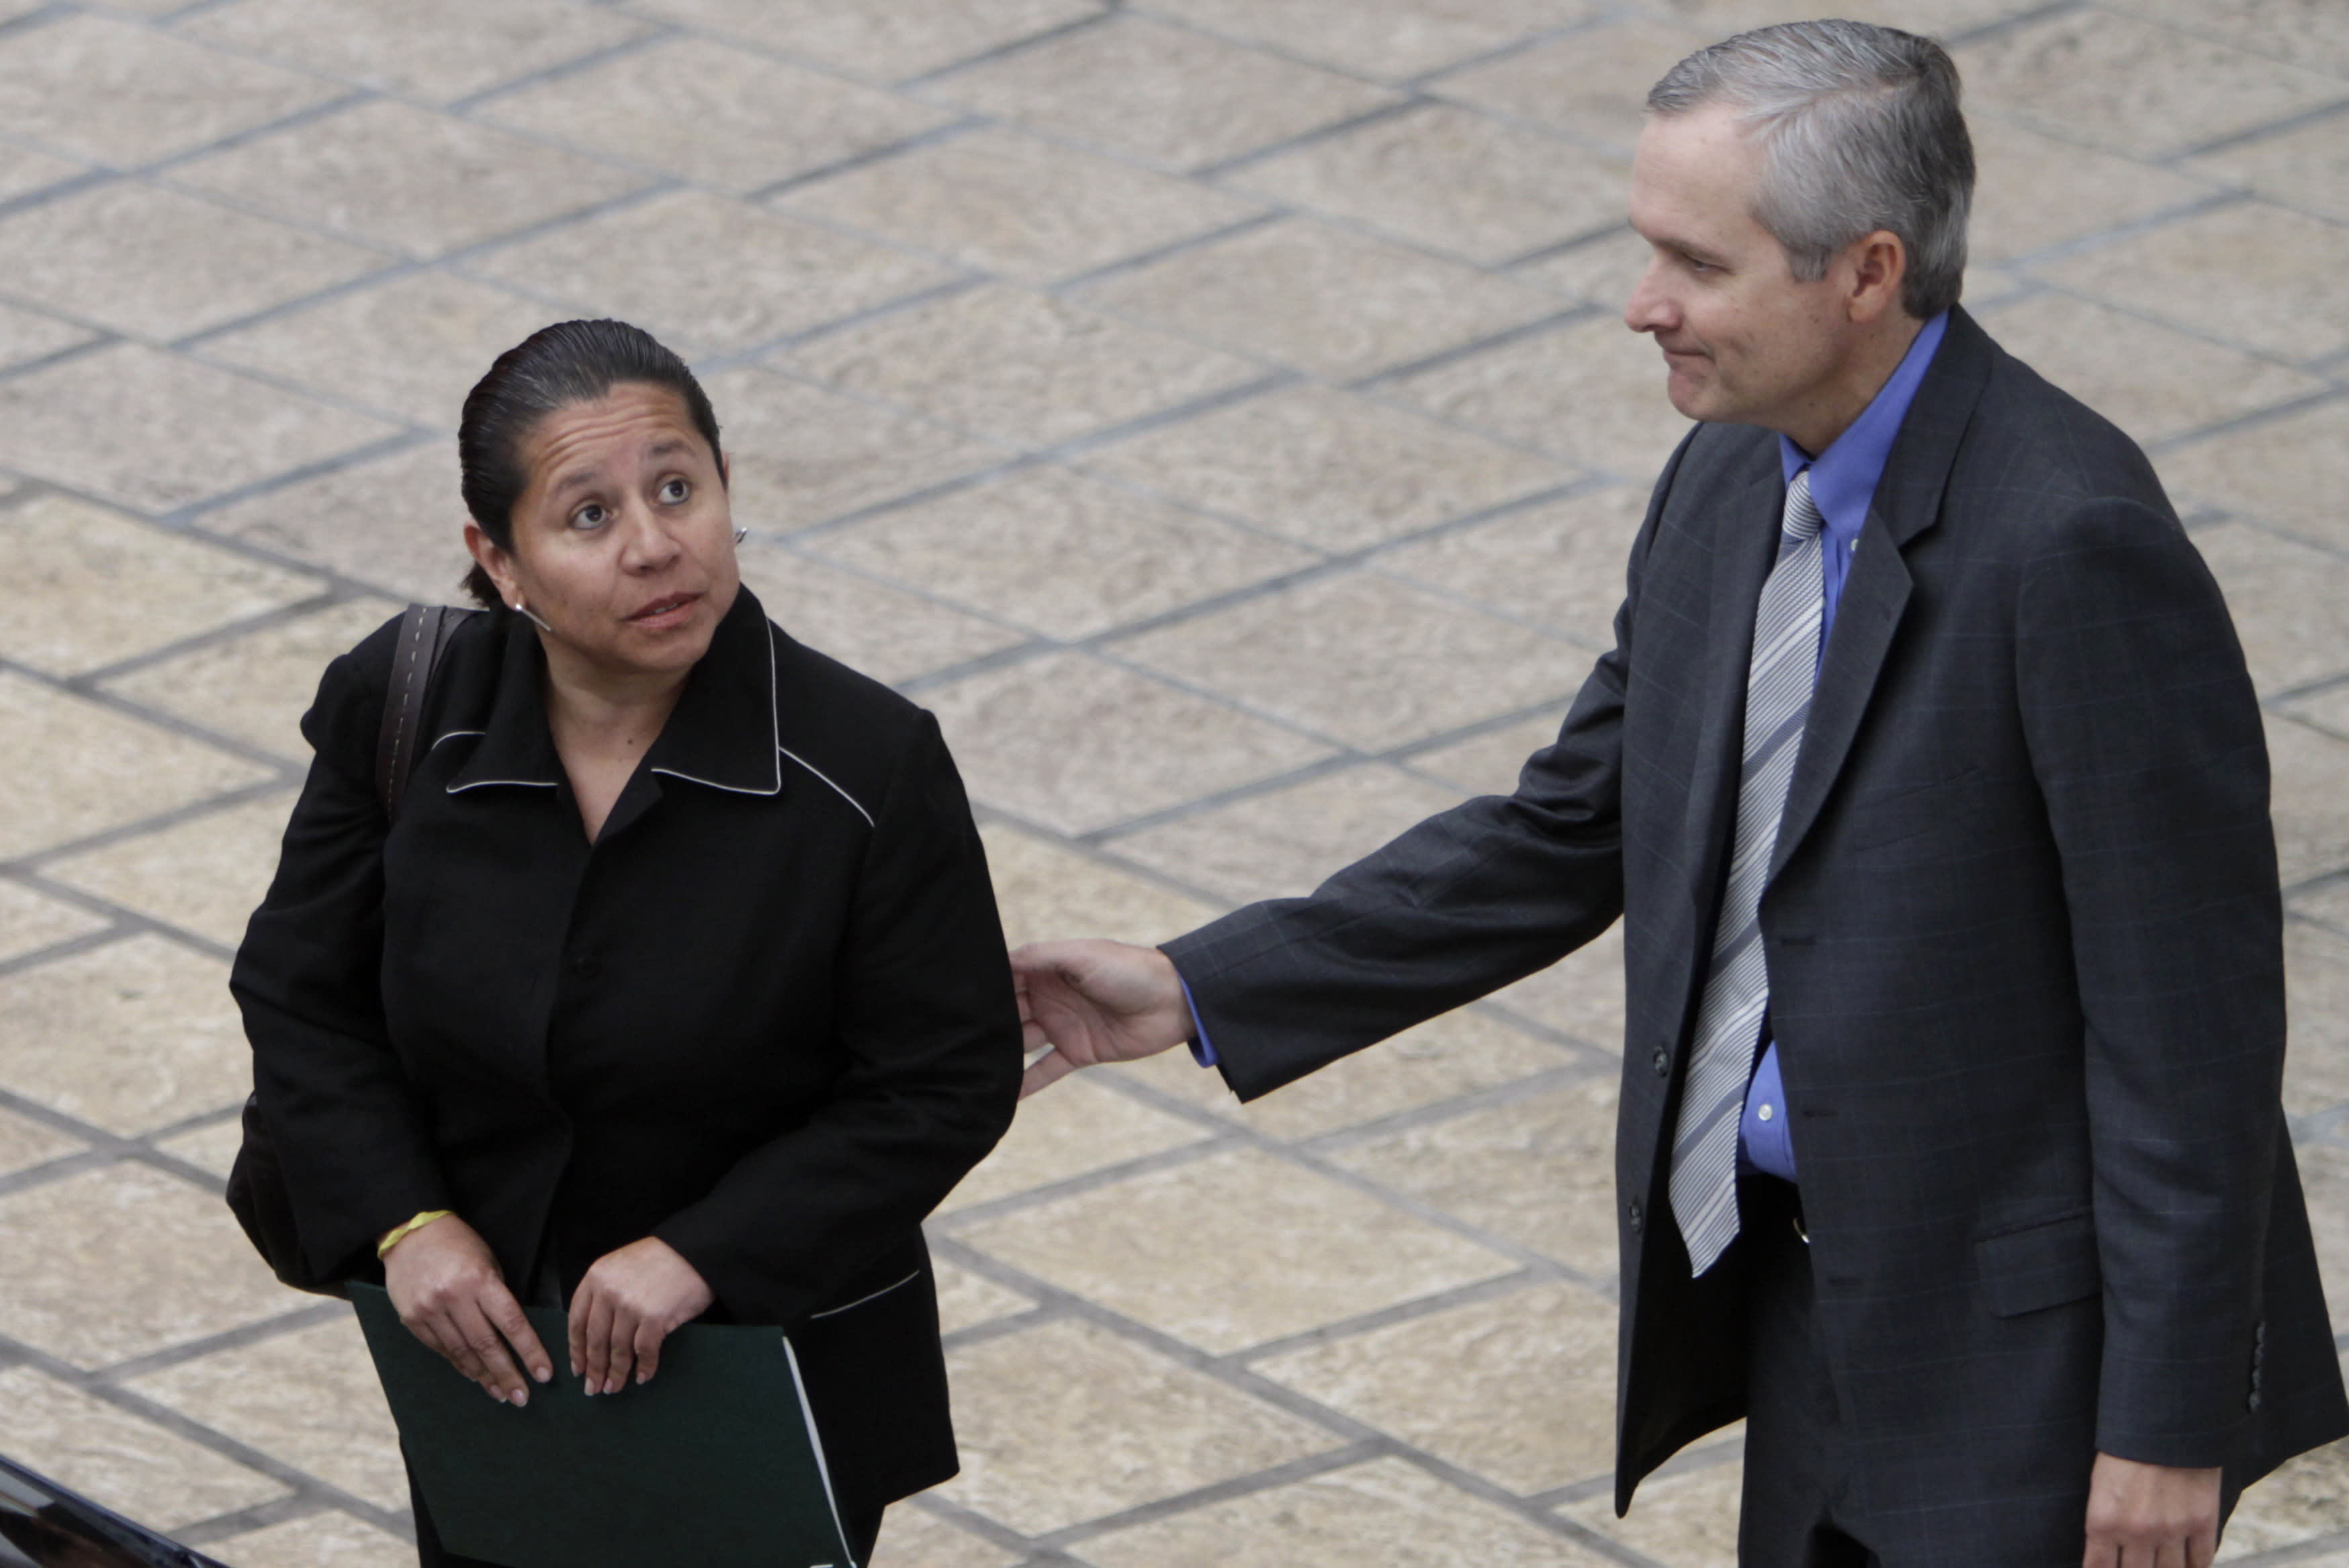 Ex-spy chief wanted in Colombia for wiretaps surrenders